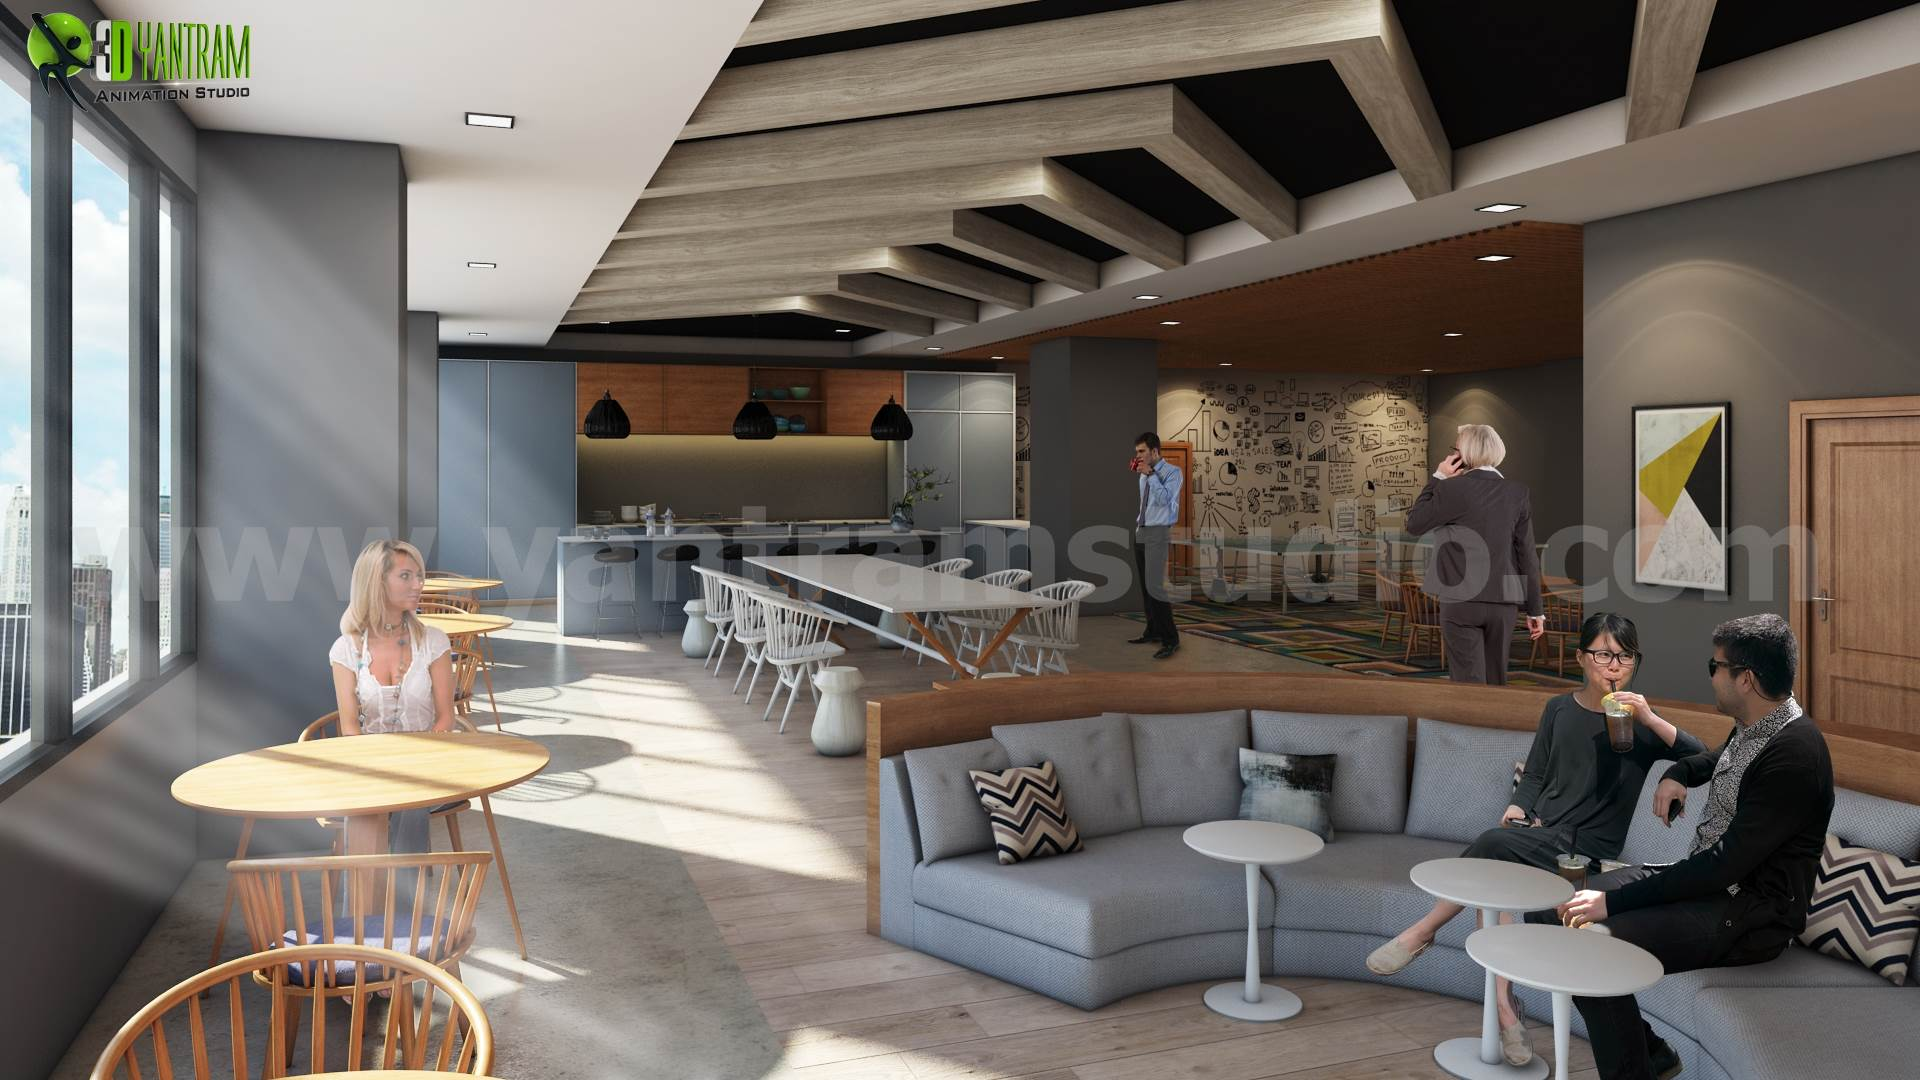 Creative ideas for Office Interior Design by Yantram 3d interior designers Commercial Modern Interior Office Design Ideas for your commercial office. 3 Renders includes all different ares with decent furniture like Waiting area, Refresh Bar, Kitchen, dining area.